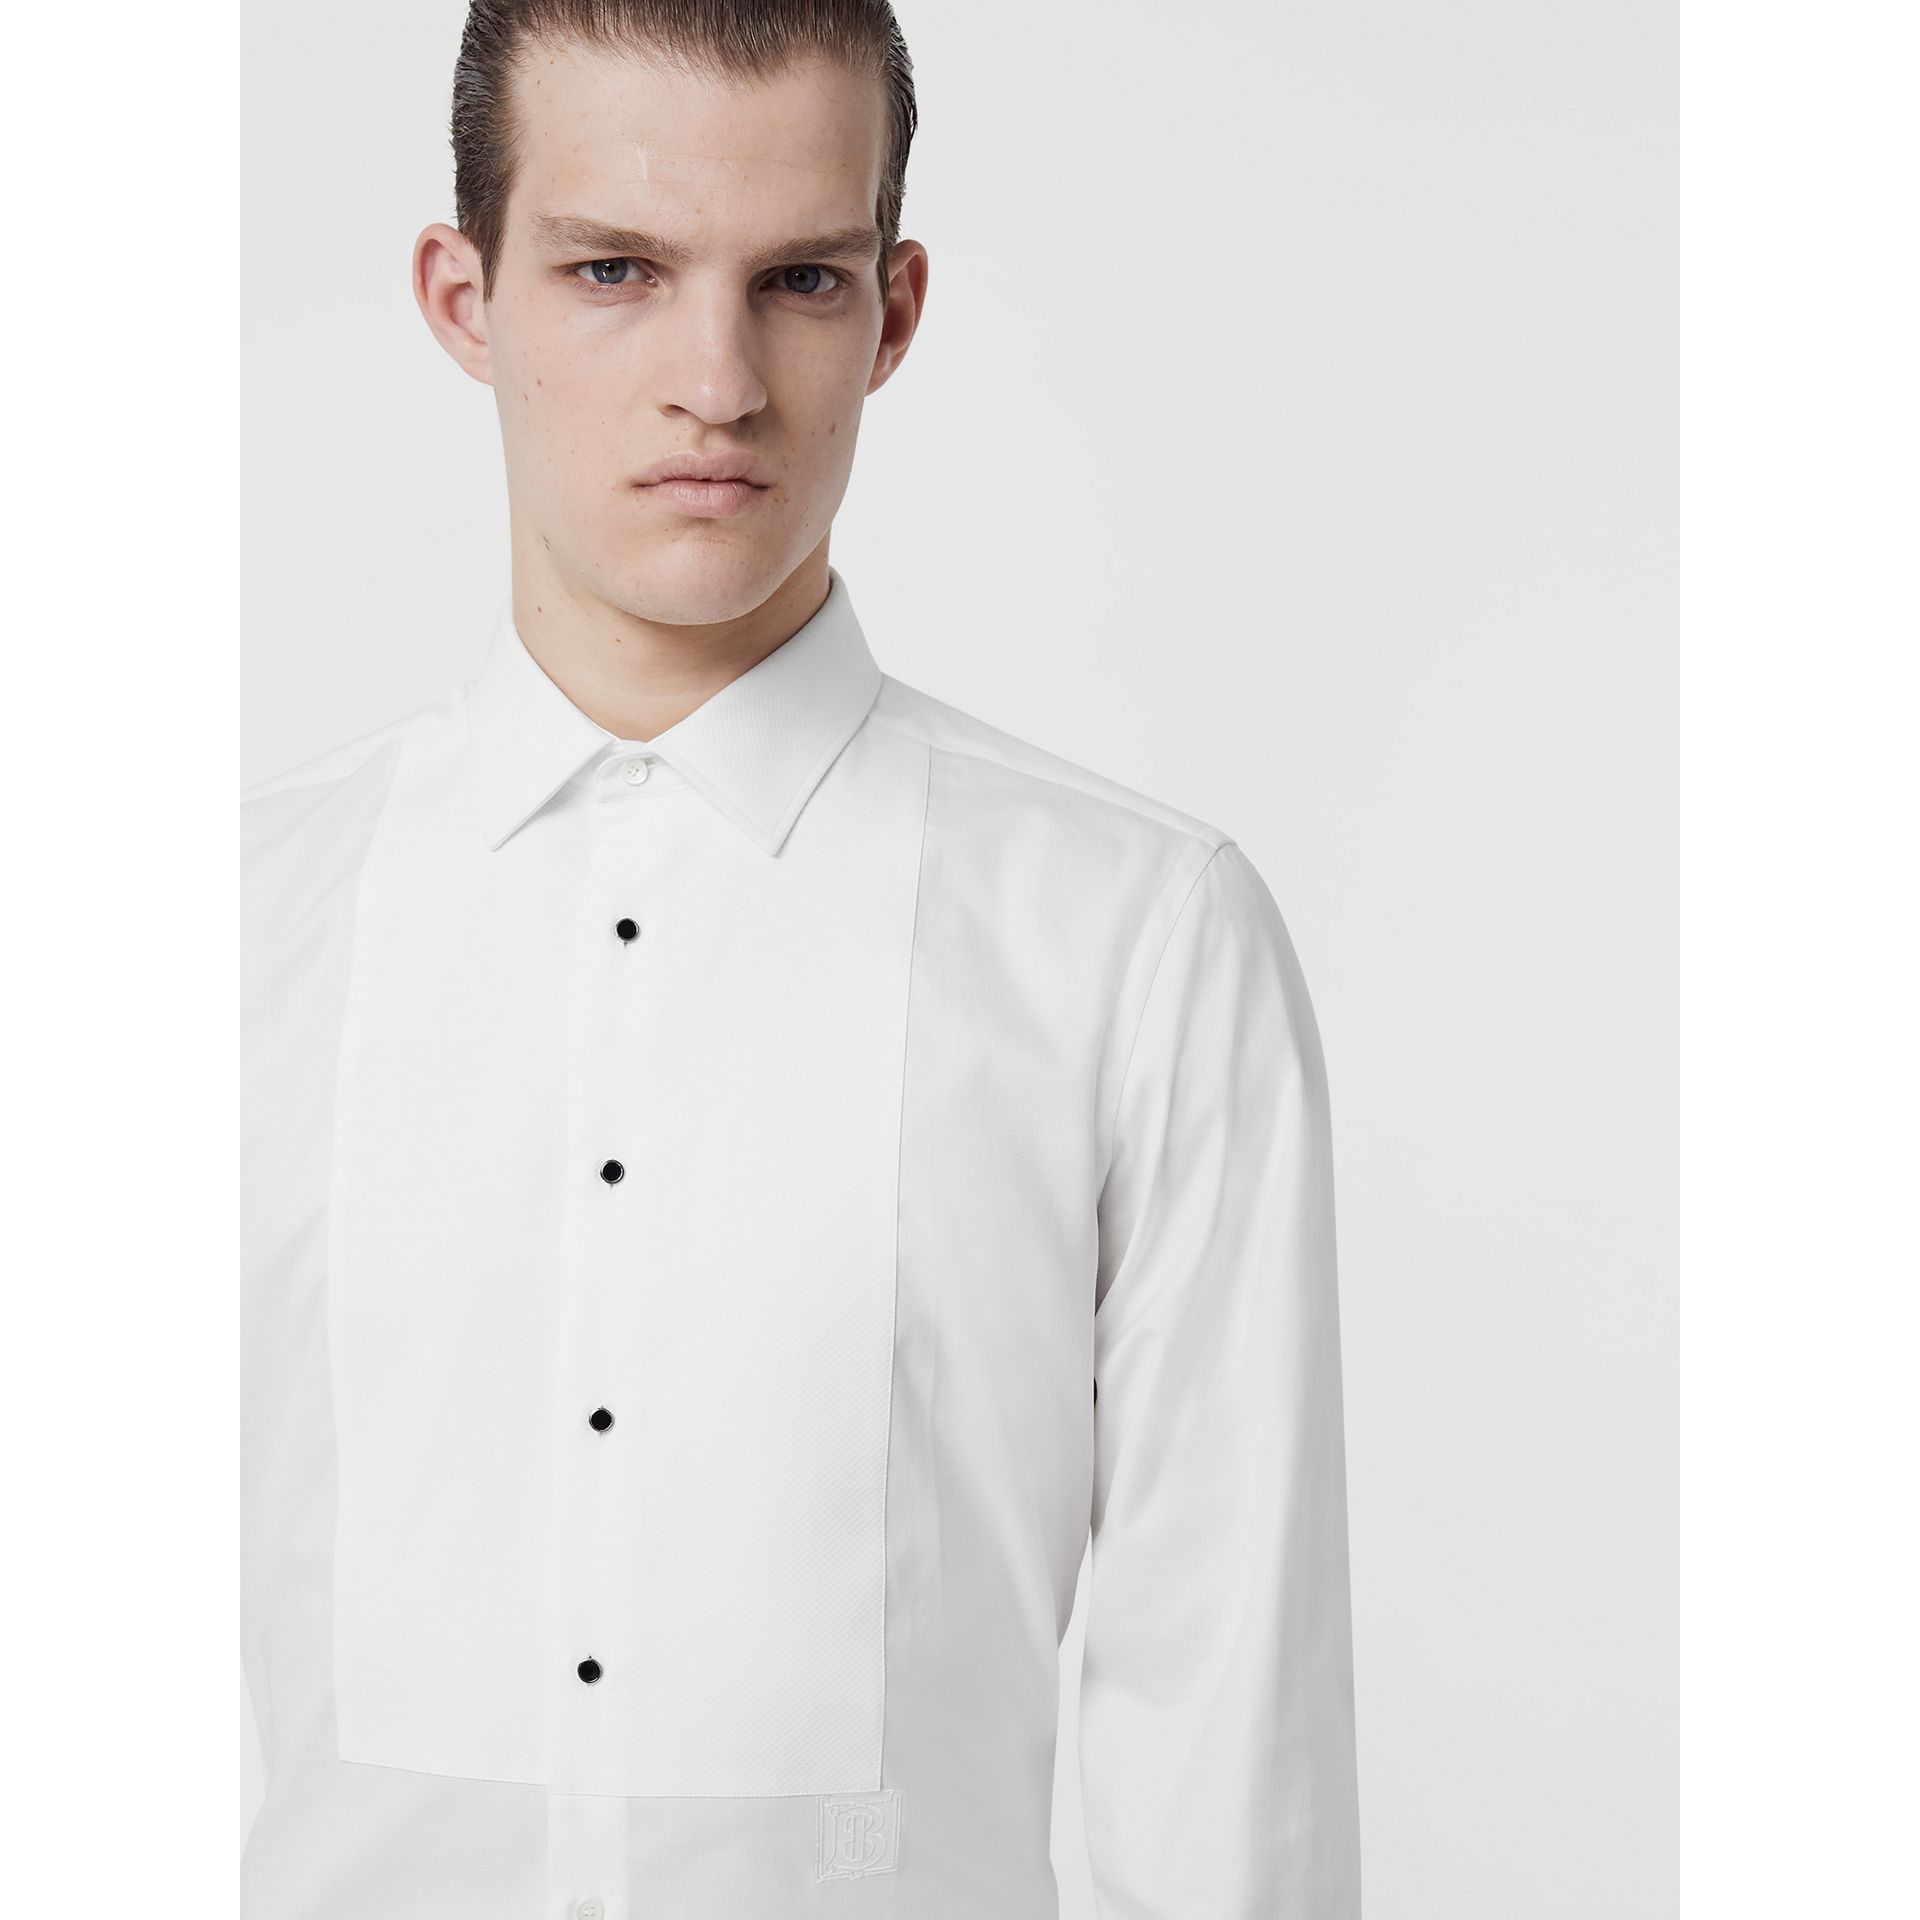 Panelled Bib Cotton Oxford Dress Shirt in White - Men | Burberry Hong Kong S.A.R - gallery image 1